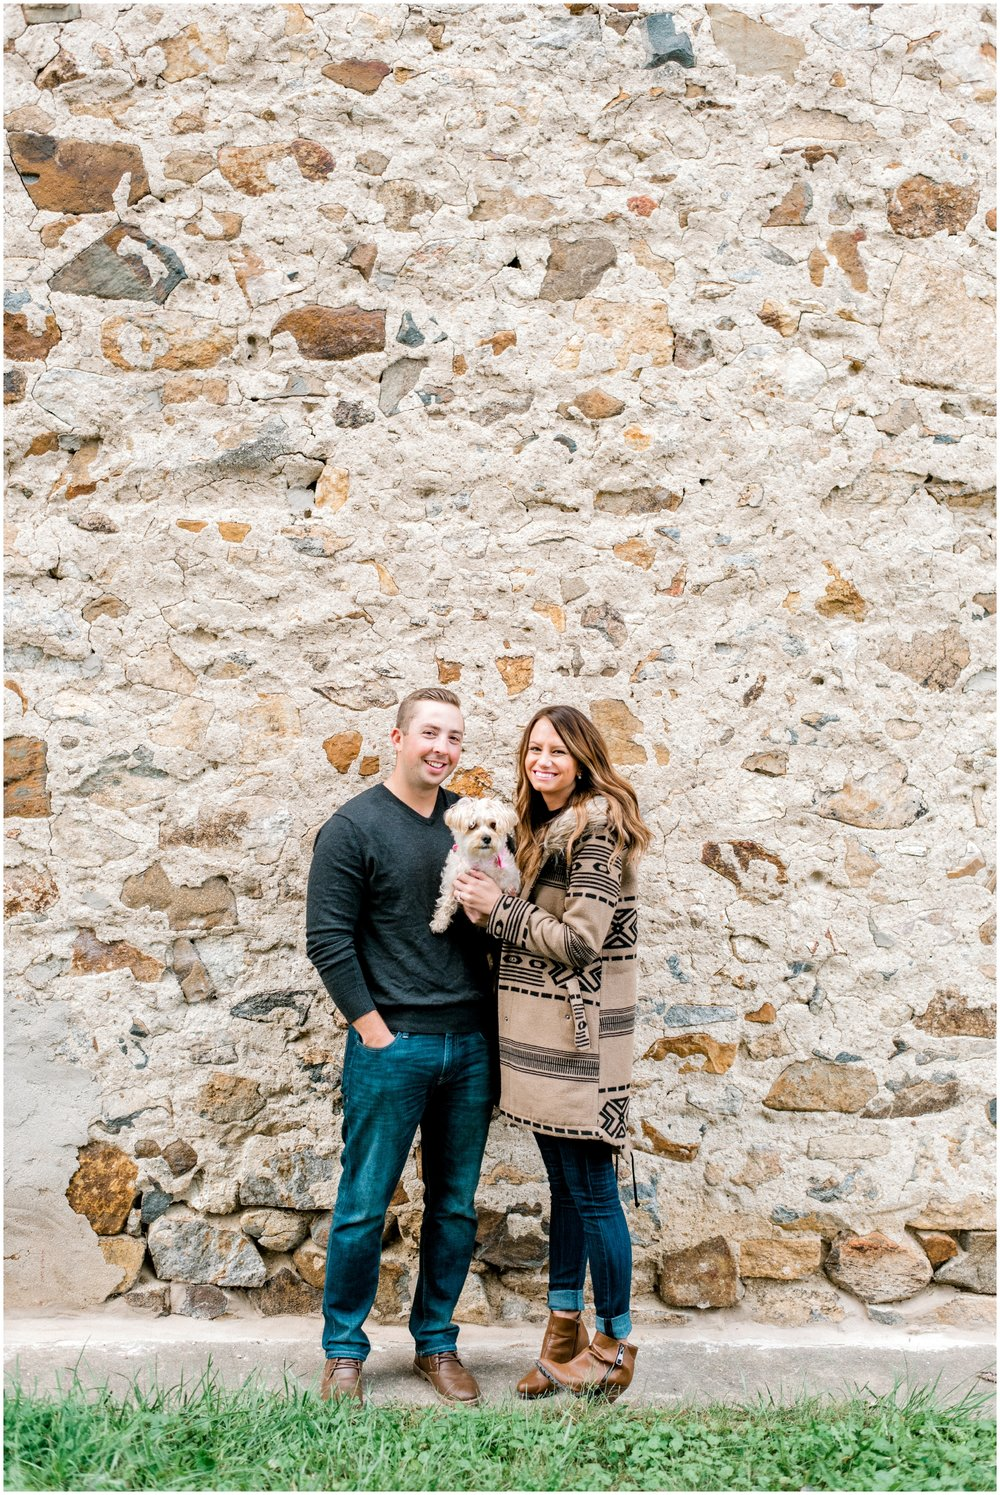 Fall Springton Manor Farm Engagement Session - Krista Brackin Photography_0037.jpg